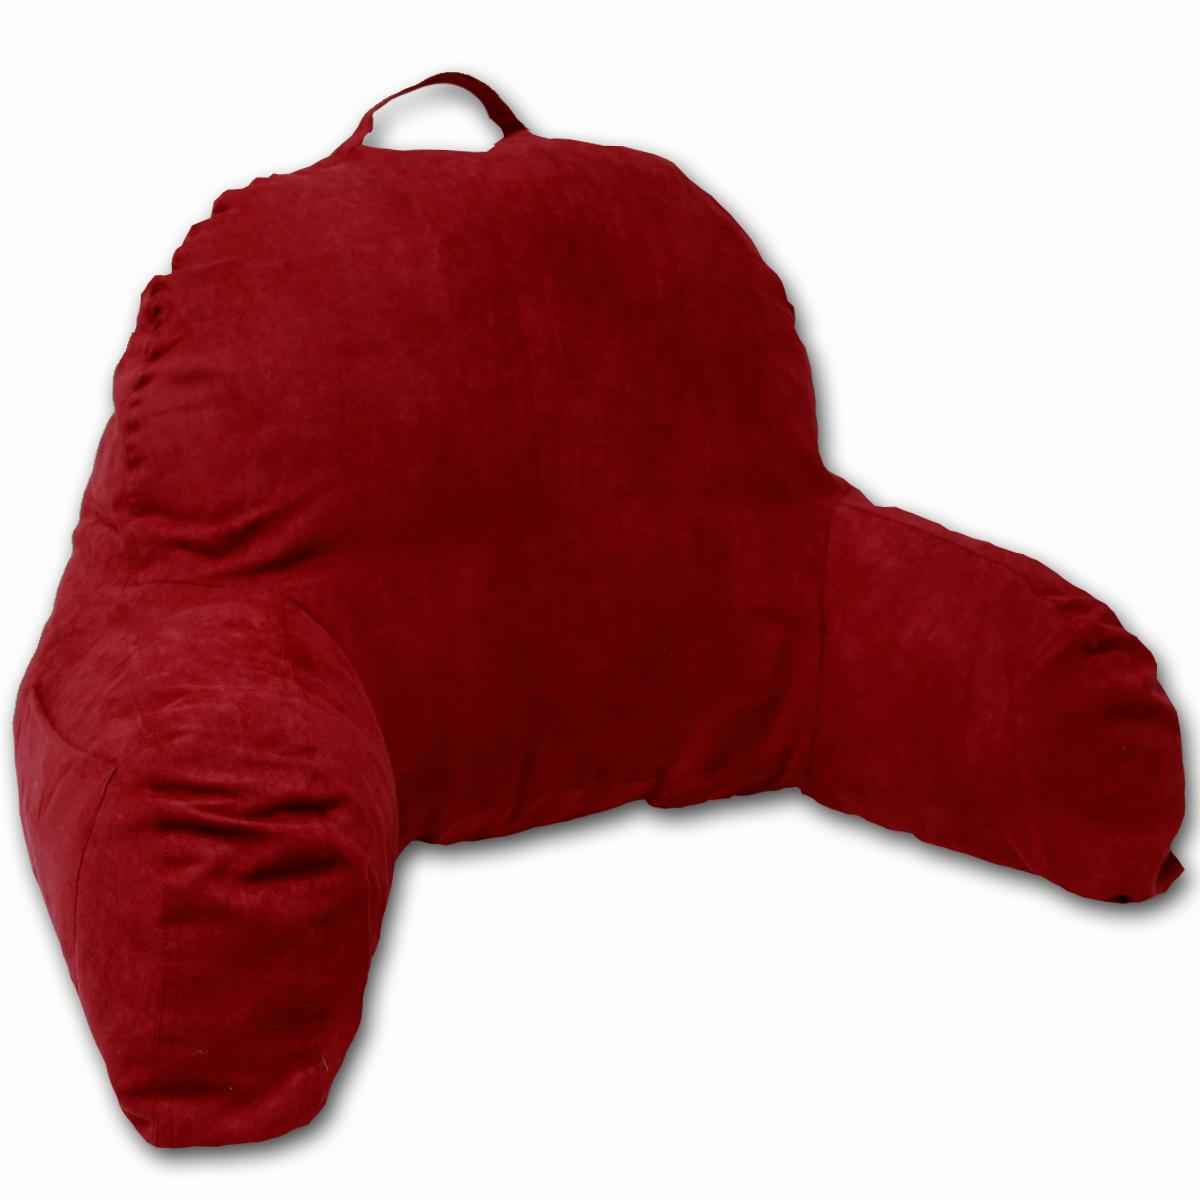 Overstock.com Red Microsuede Bed Rest at Sears.com